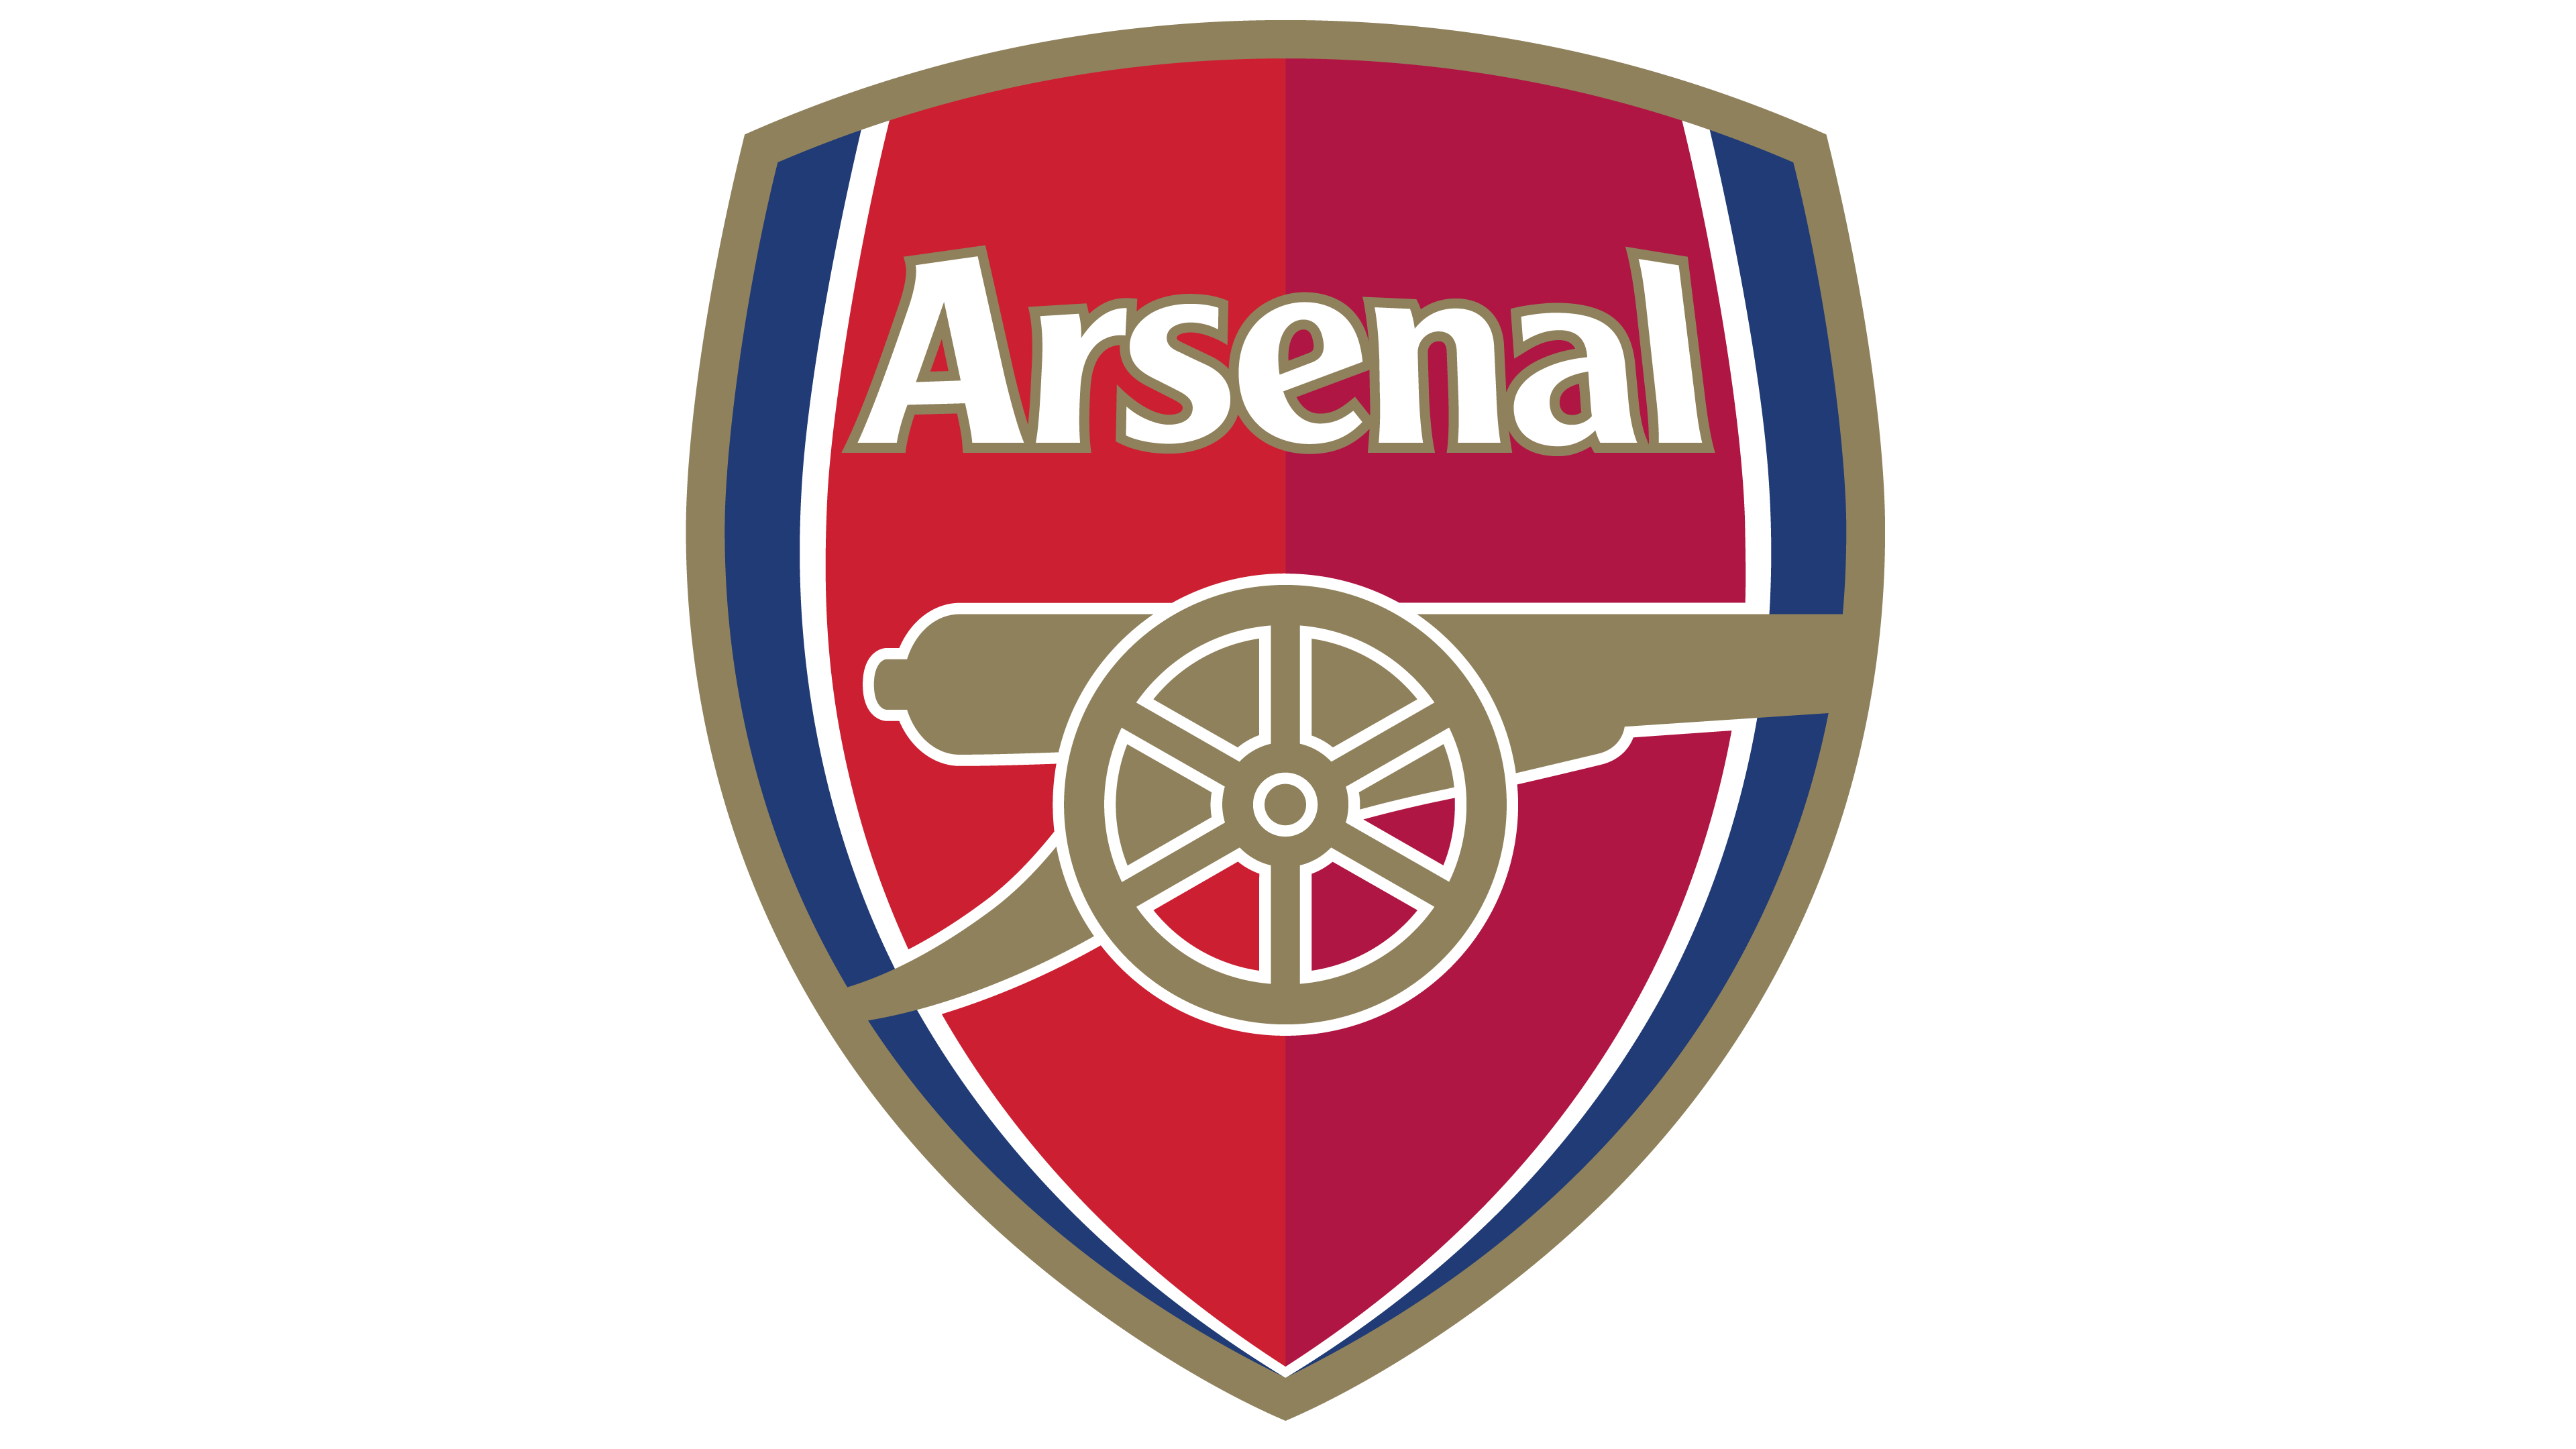 vector freeuse download Arsenal logo interesting history. Vector emblem gothic